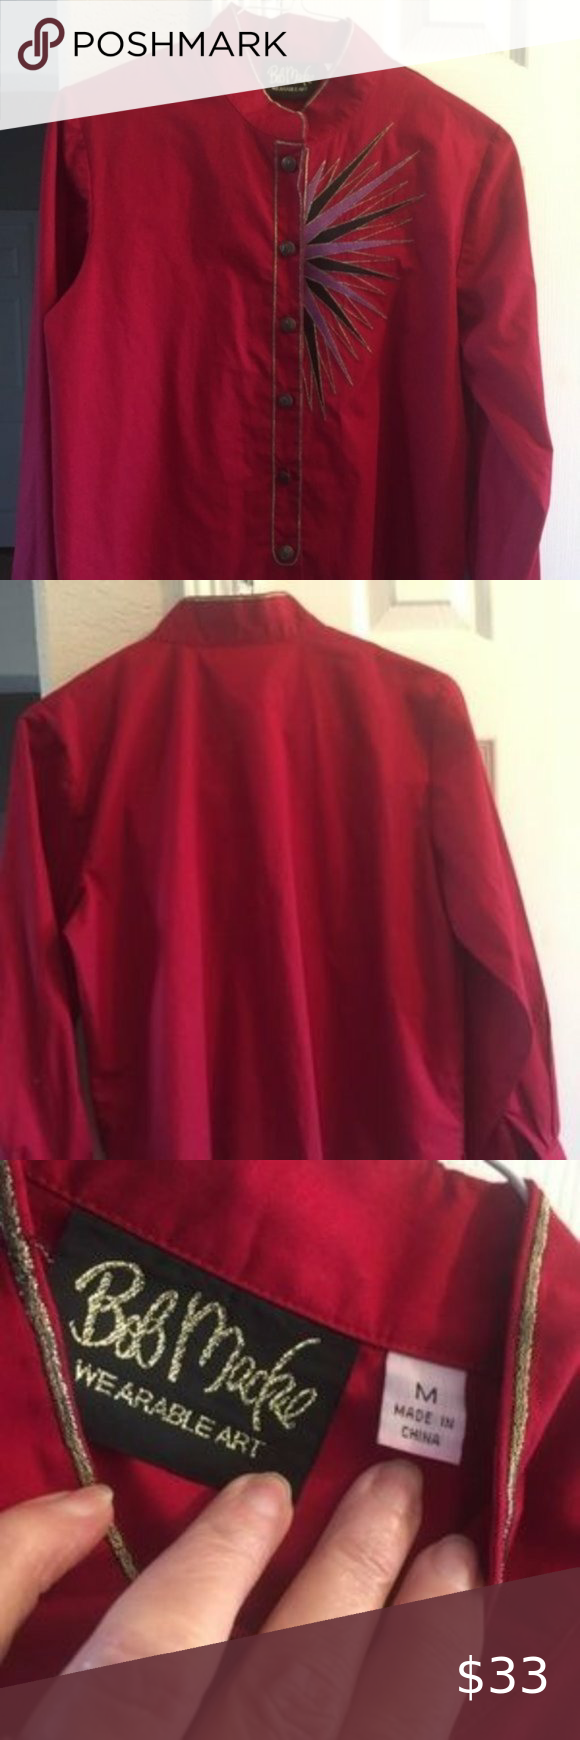 bob mackie wearable art red long sleeve shirt M Condition: Pre-owned : No defects Size Type: Regular Style: Blouse Sleeve Style: Long Sleeve Brand: Bob Mackie Color: Red Size (Women's): M Material: Cotton Blend Hand wash  button down....each button has a M on it Bob Mackie Tops Blouses #wearableart